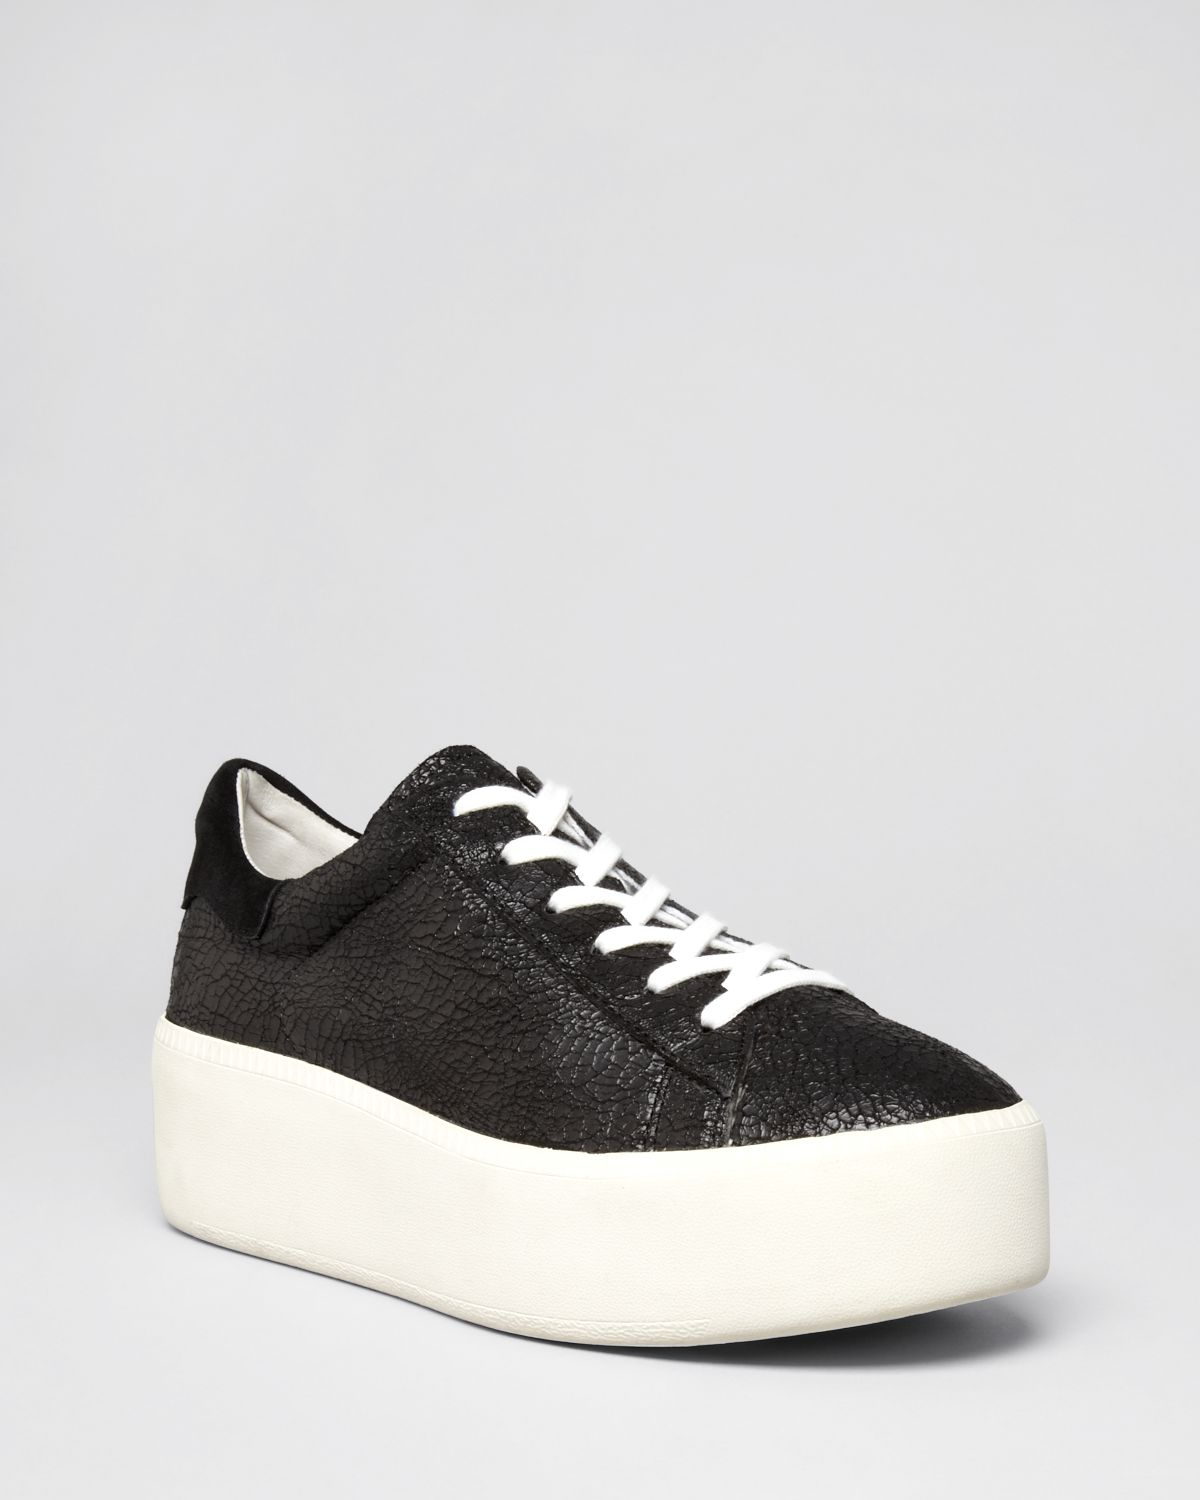 Ash Lace Up Platform Sneakers - Cult in